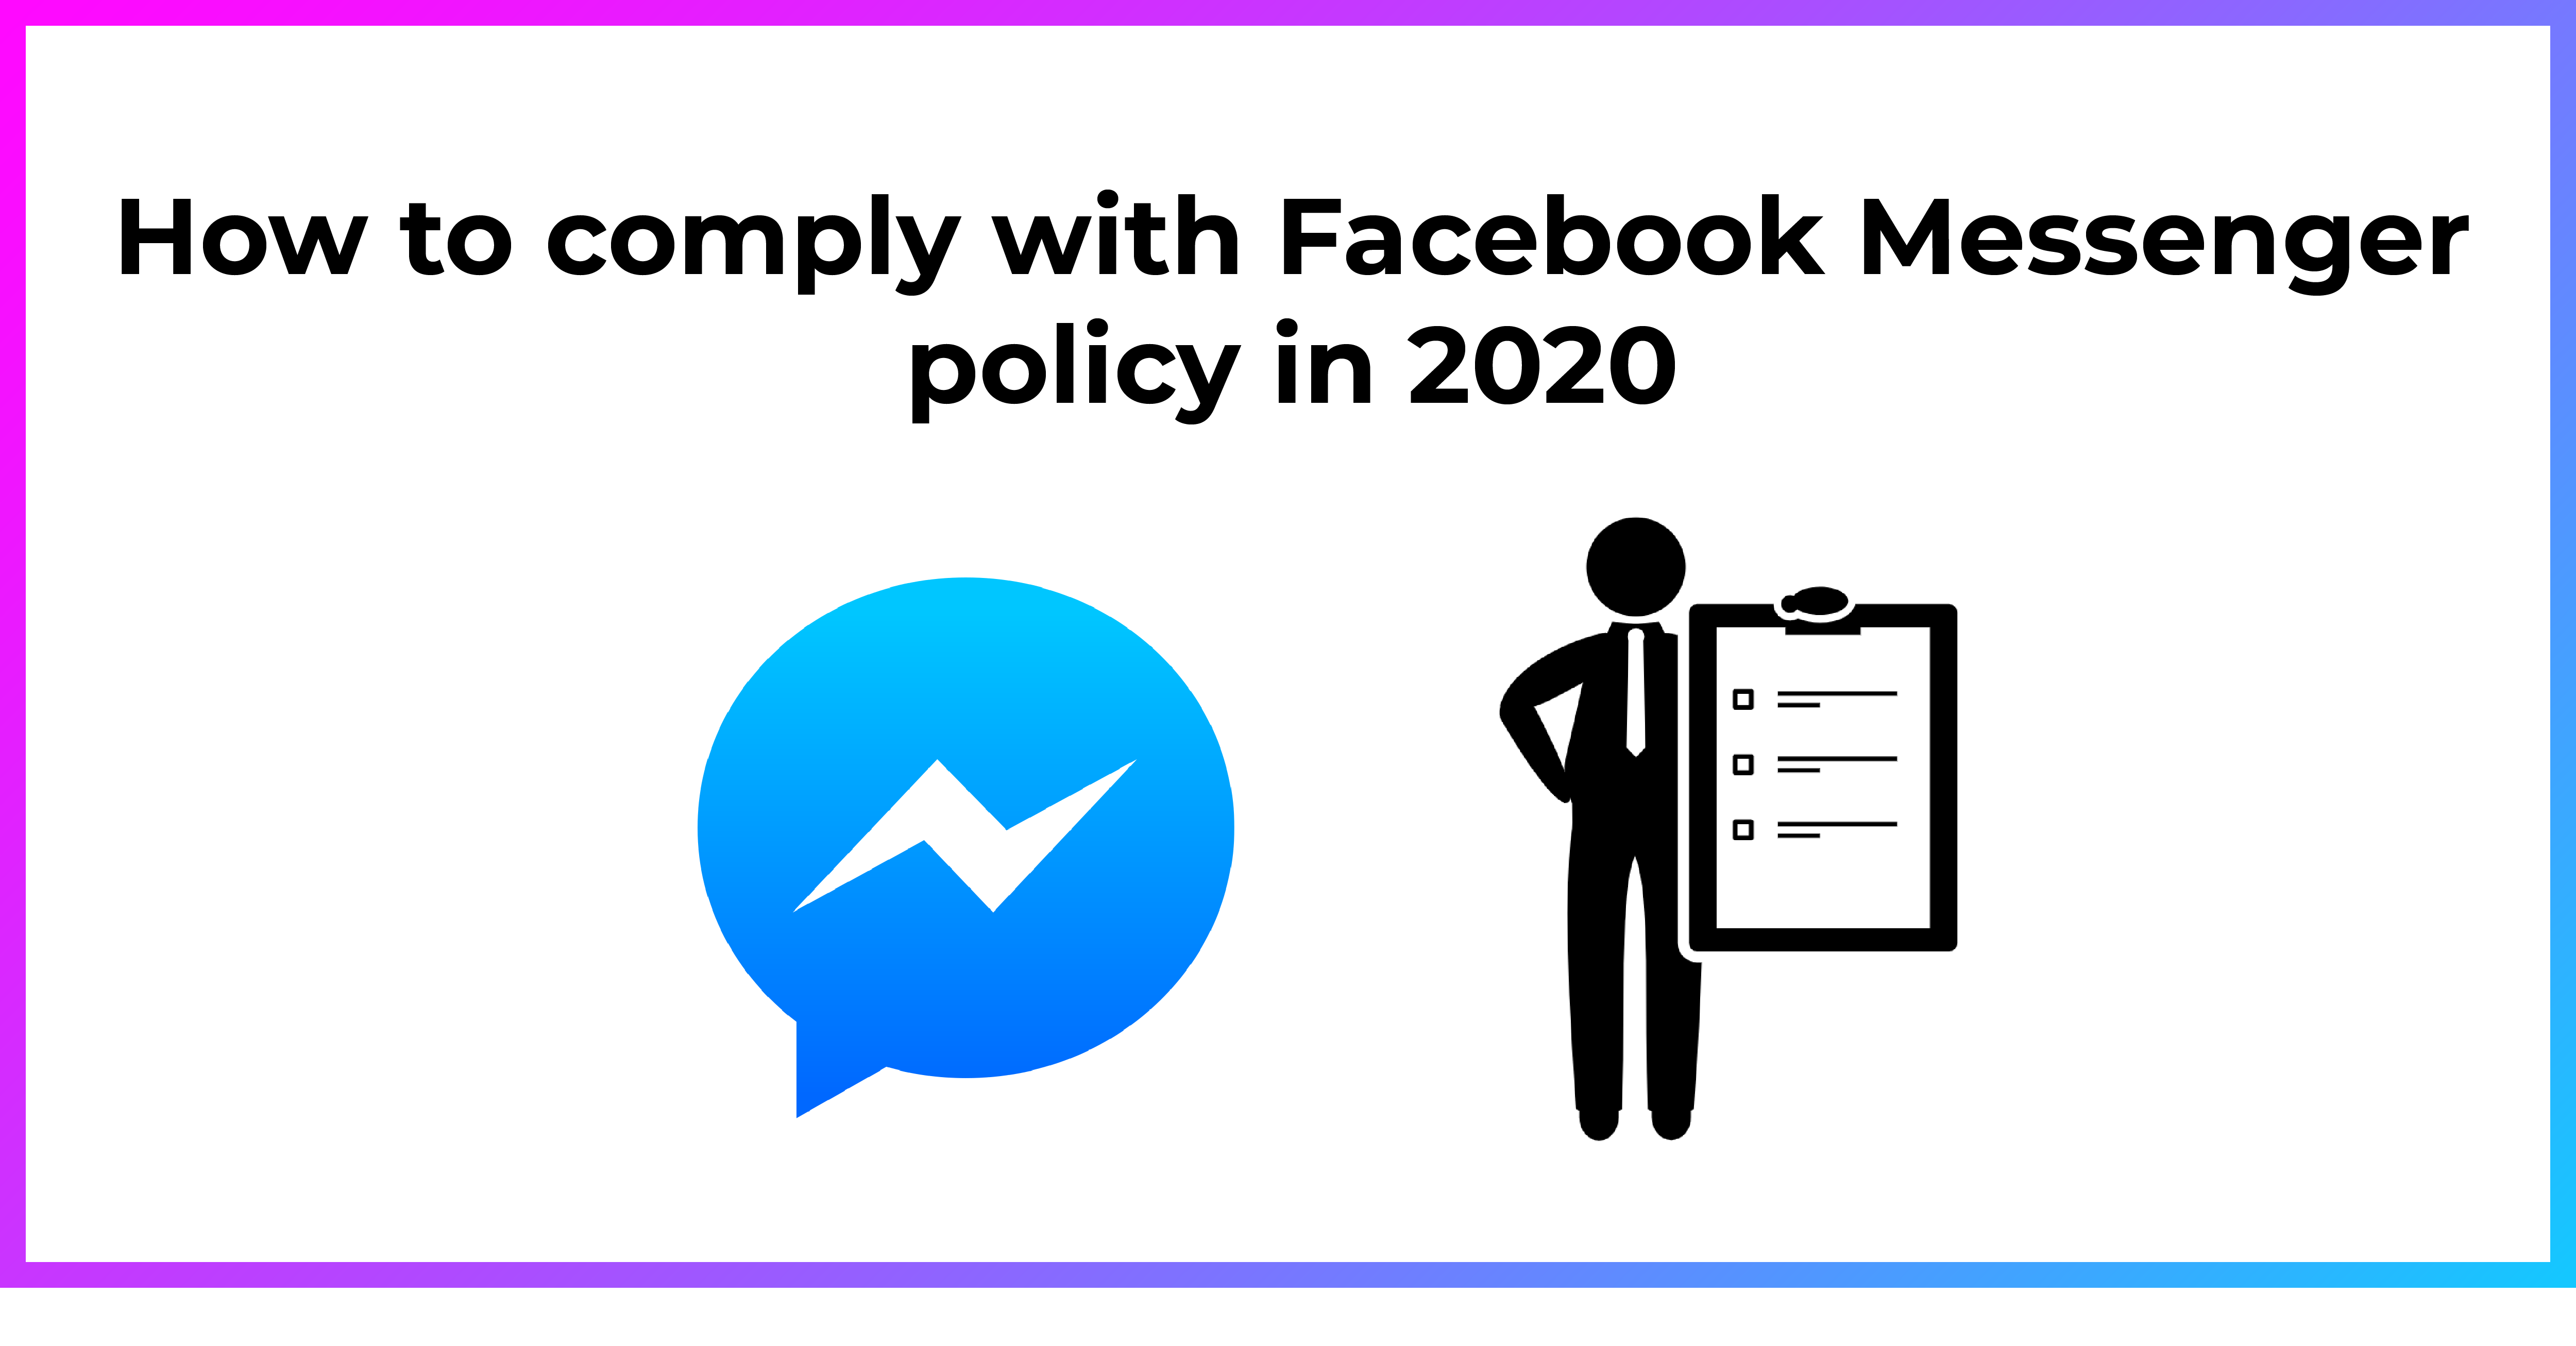 How to comply with Facebook Messenger policy in 2020